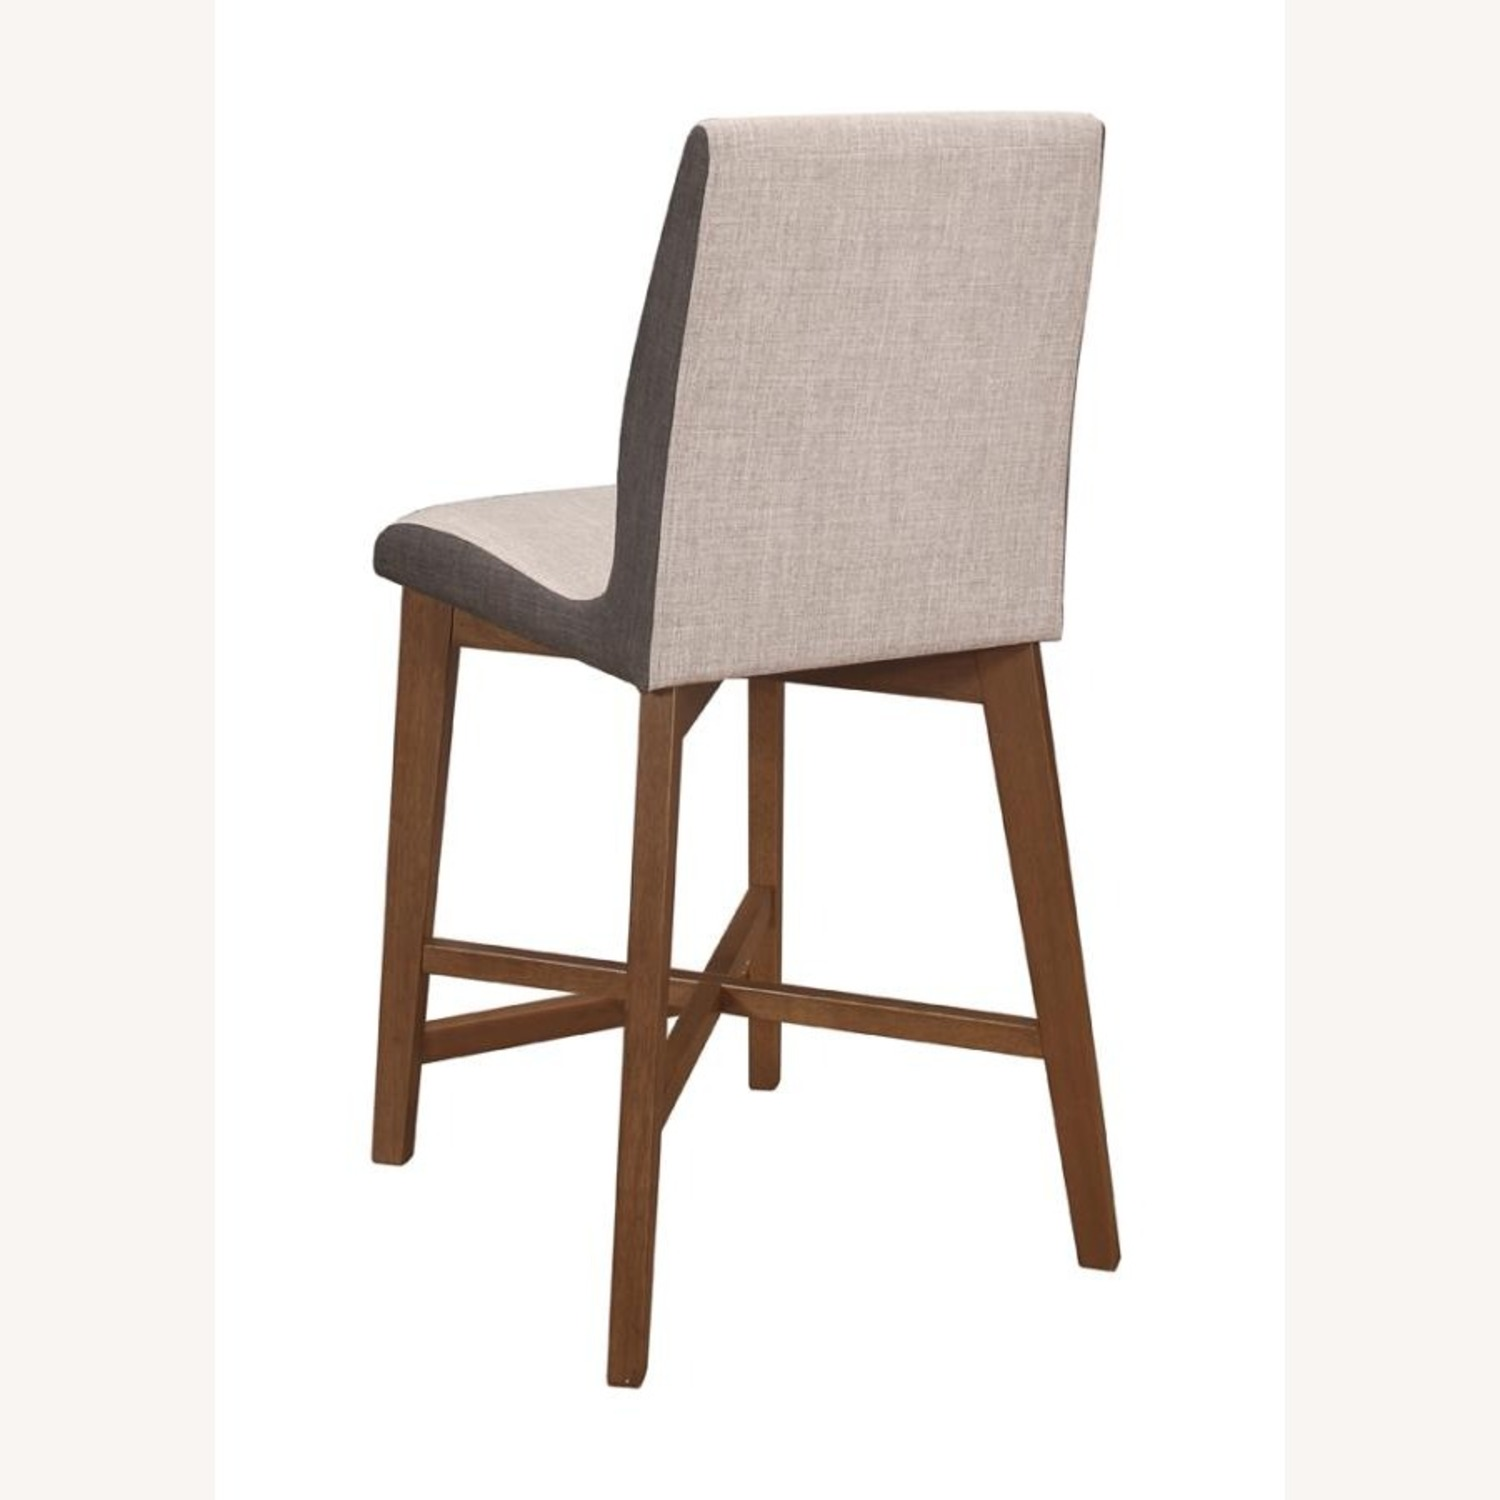 Counter Height Stool In 2-Tone Grey Fabric Finish - image-4